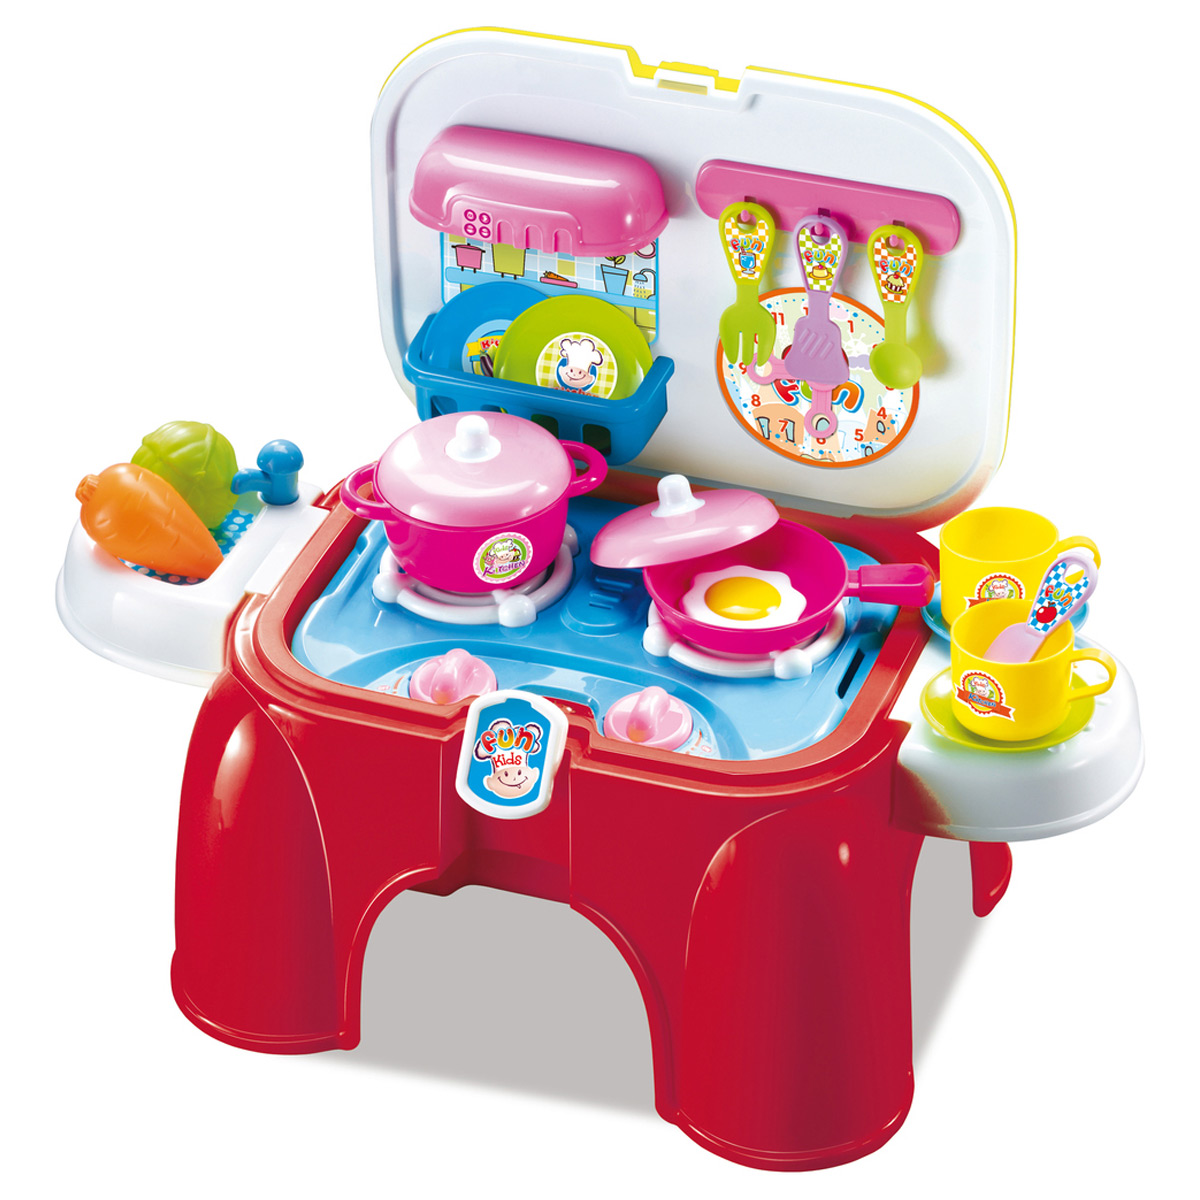 childrens kitchen playset chair - Kitchen Playset